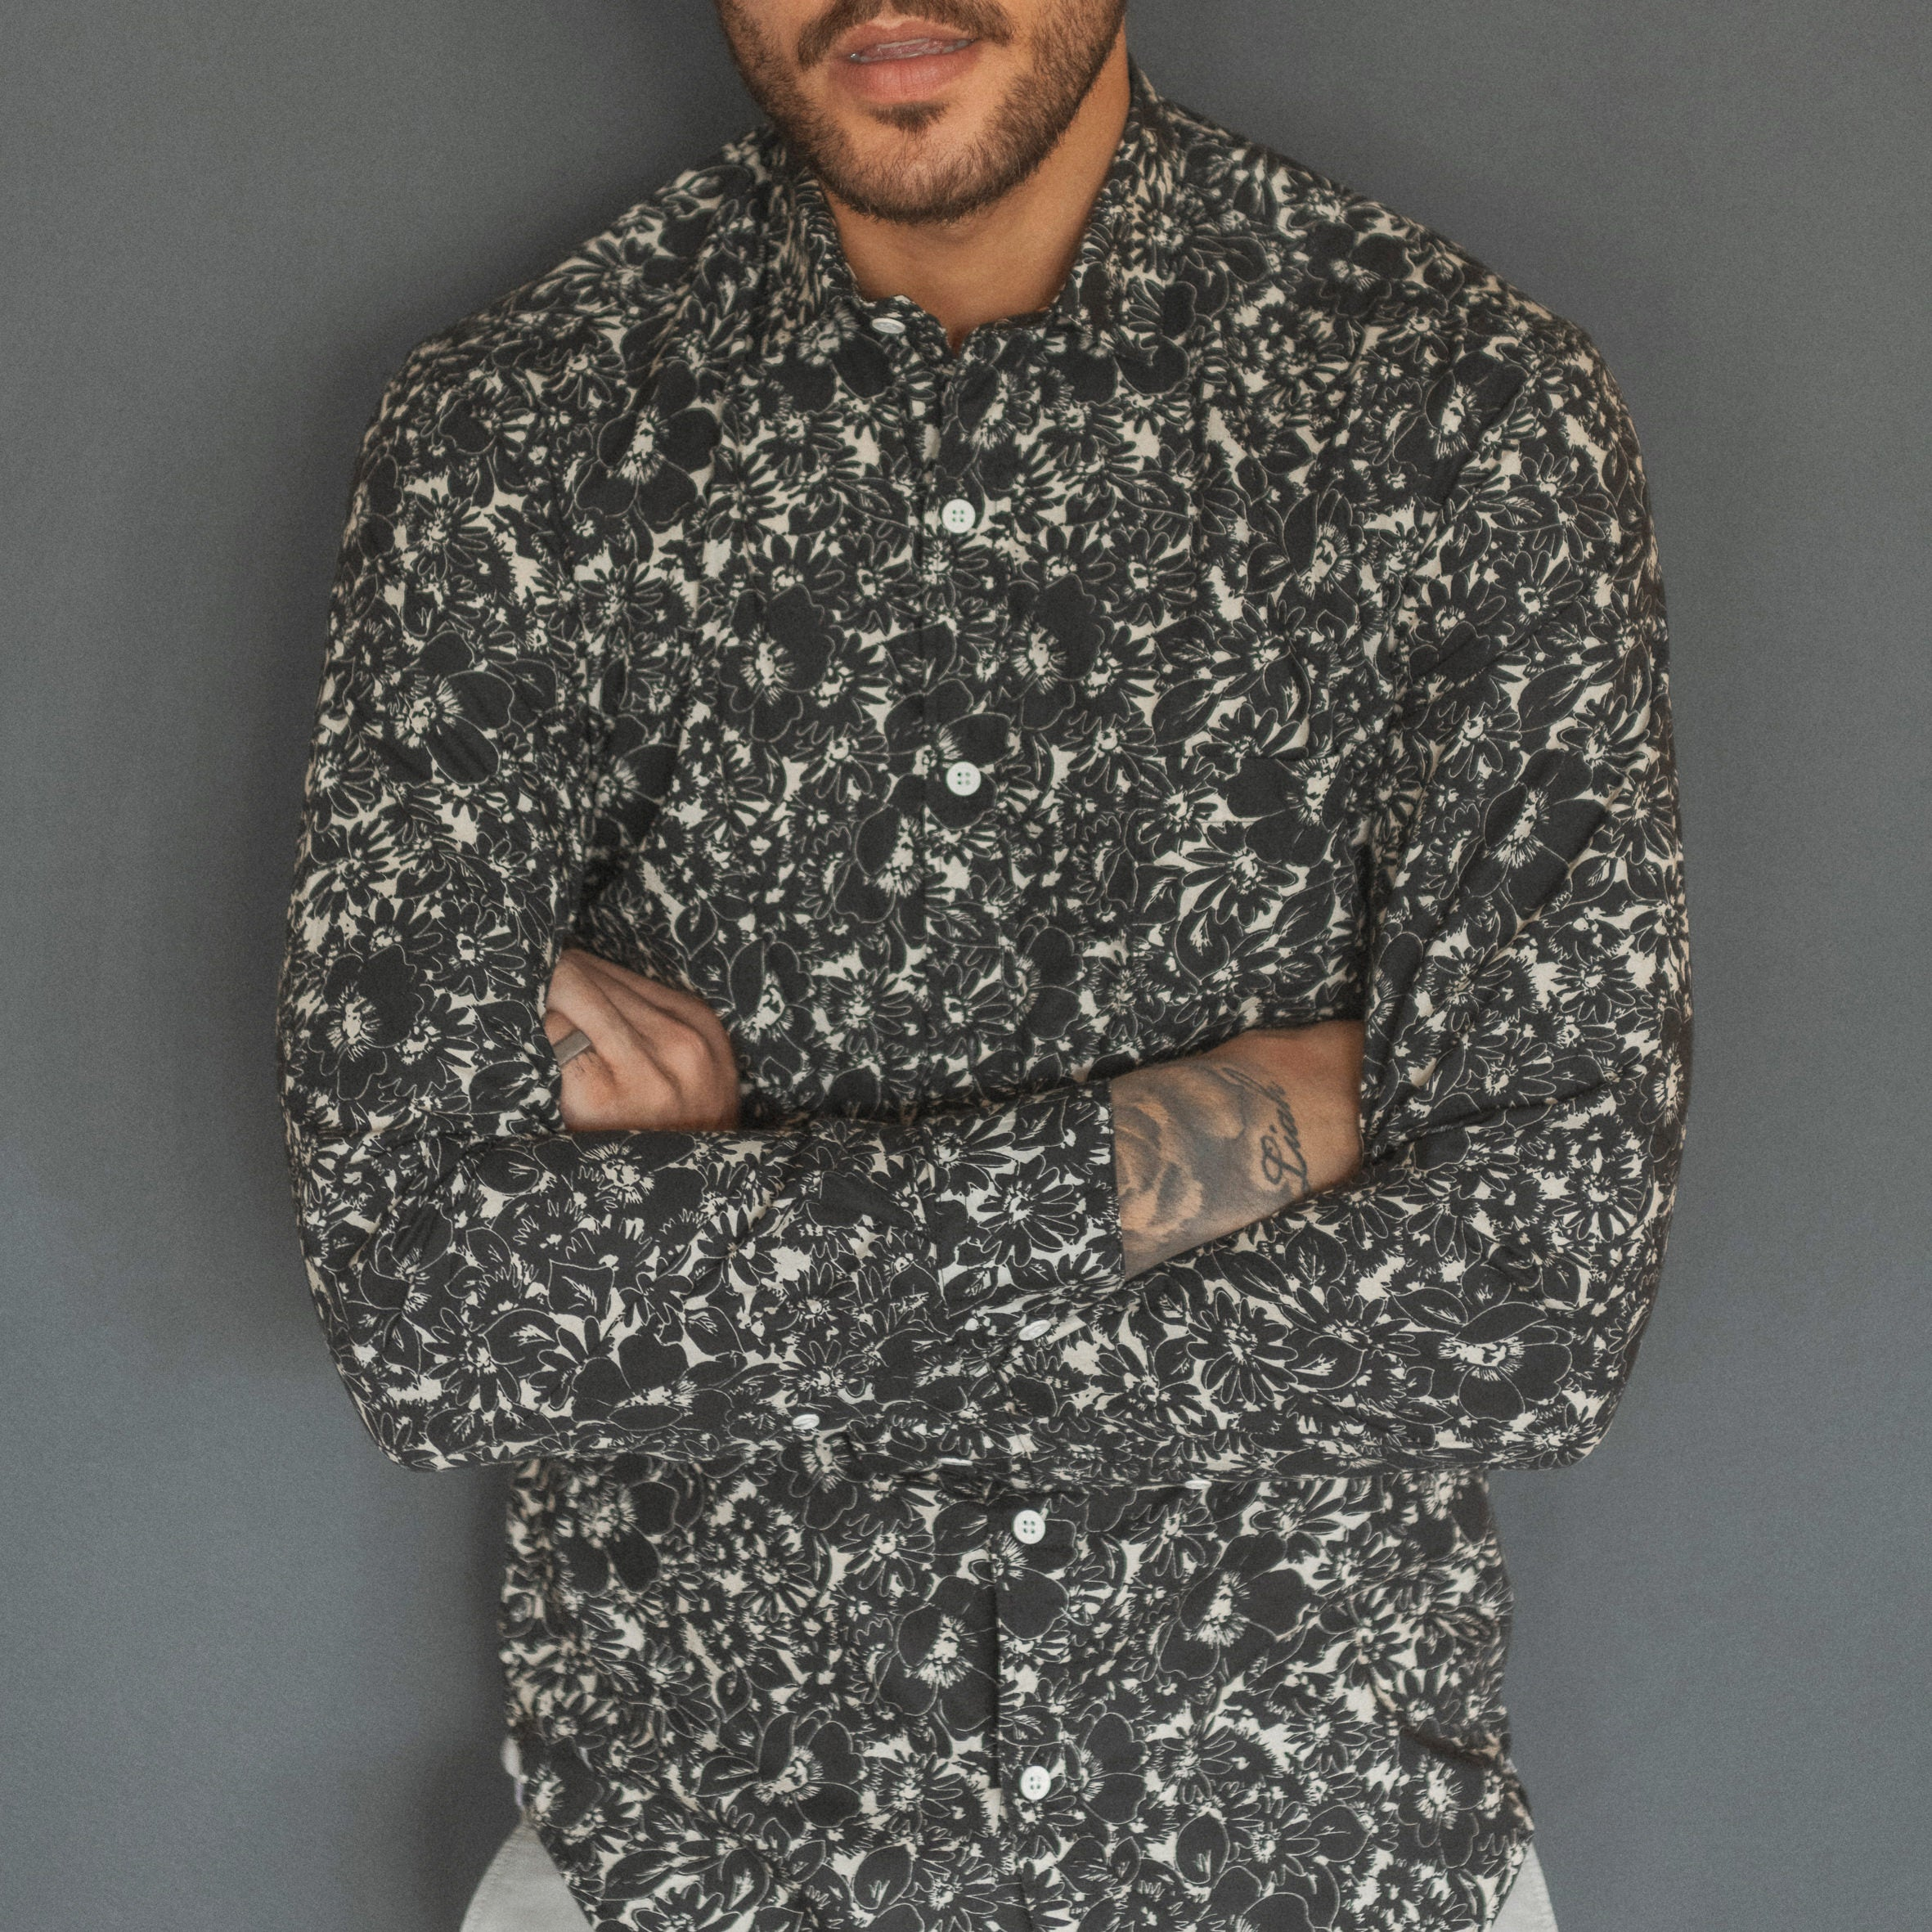 Hawaii Floral Print Shirt L/S: Black/White